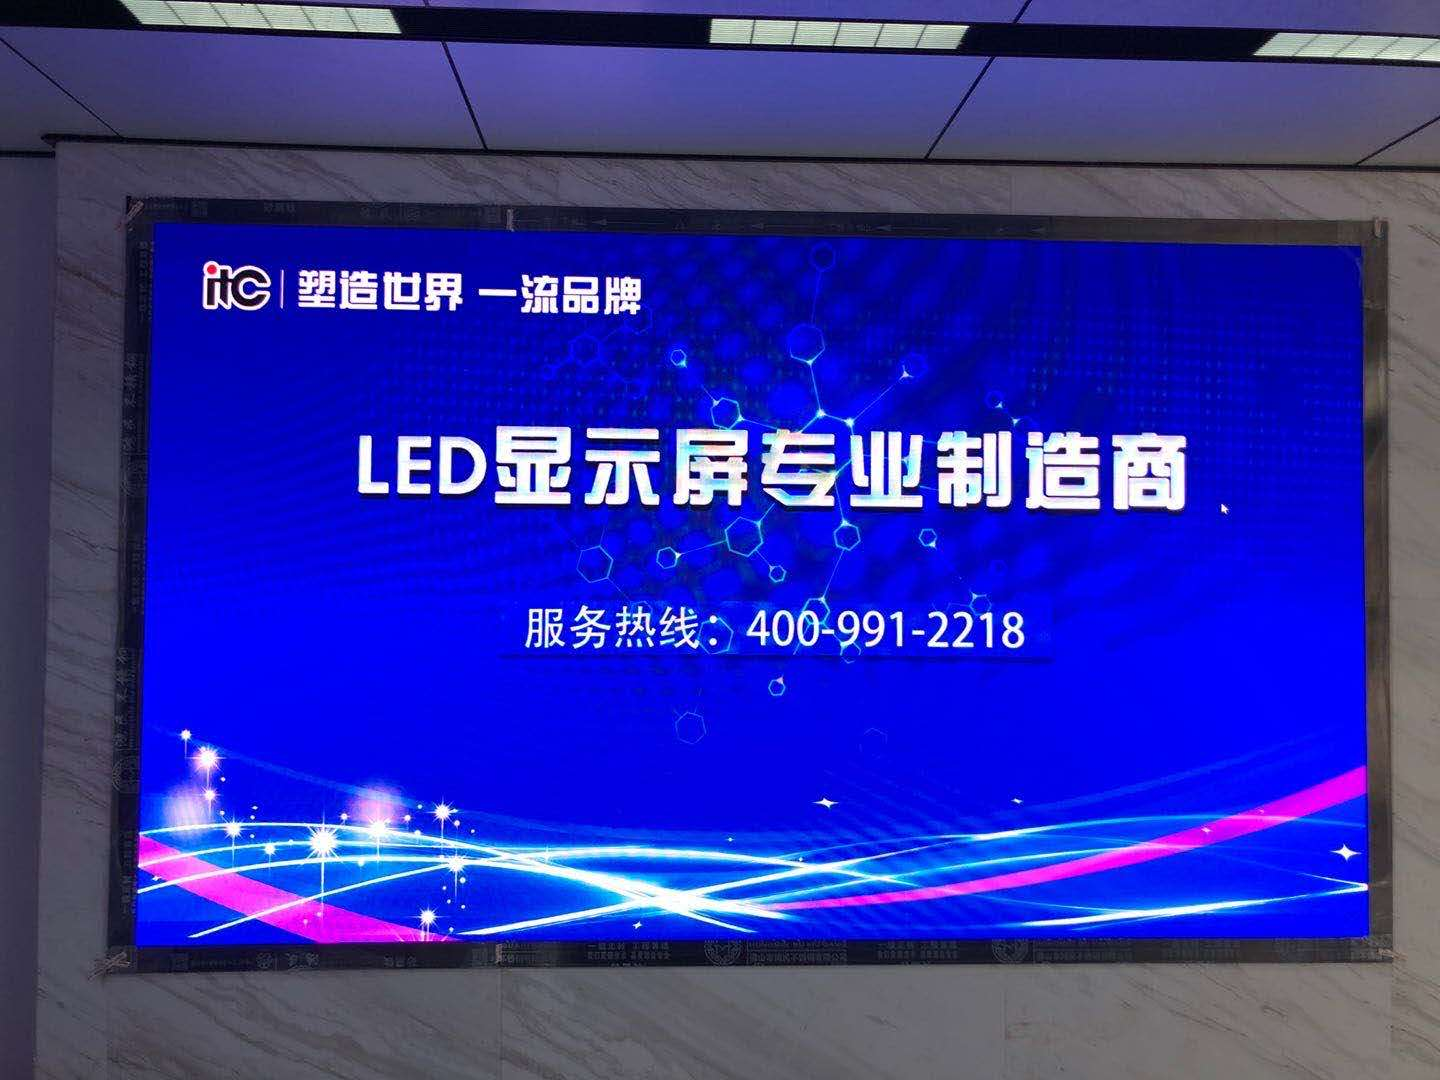 Should the indoor LED display be cooled?